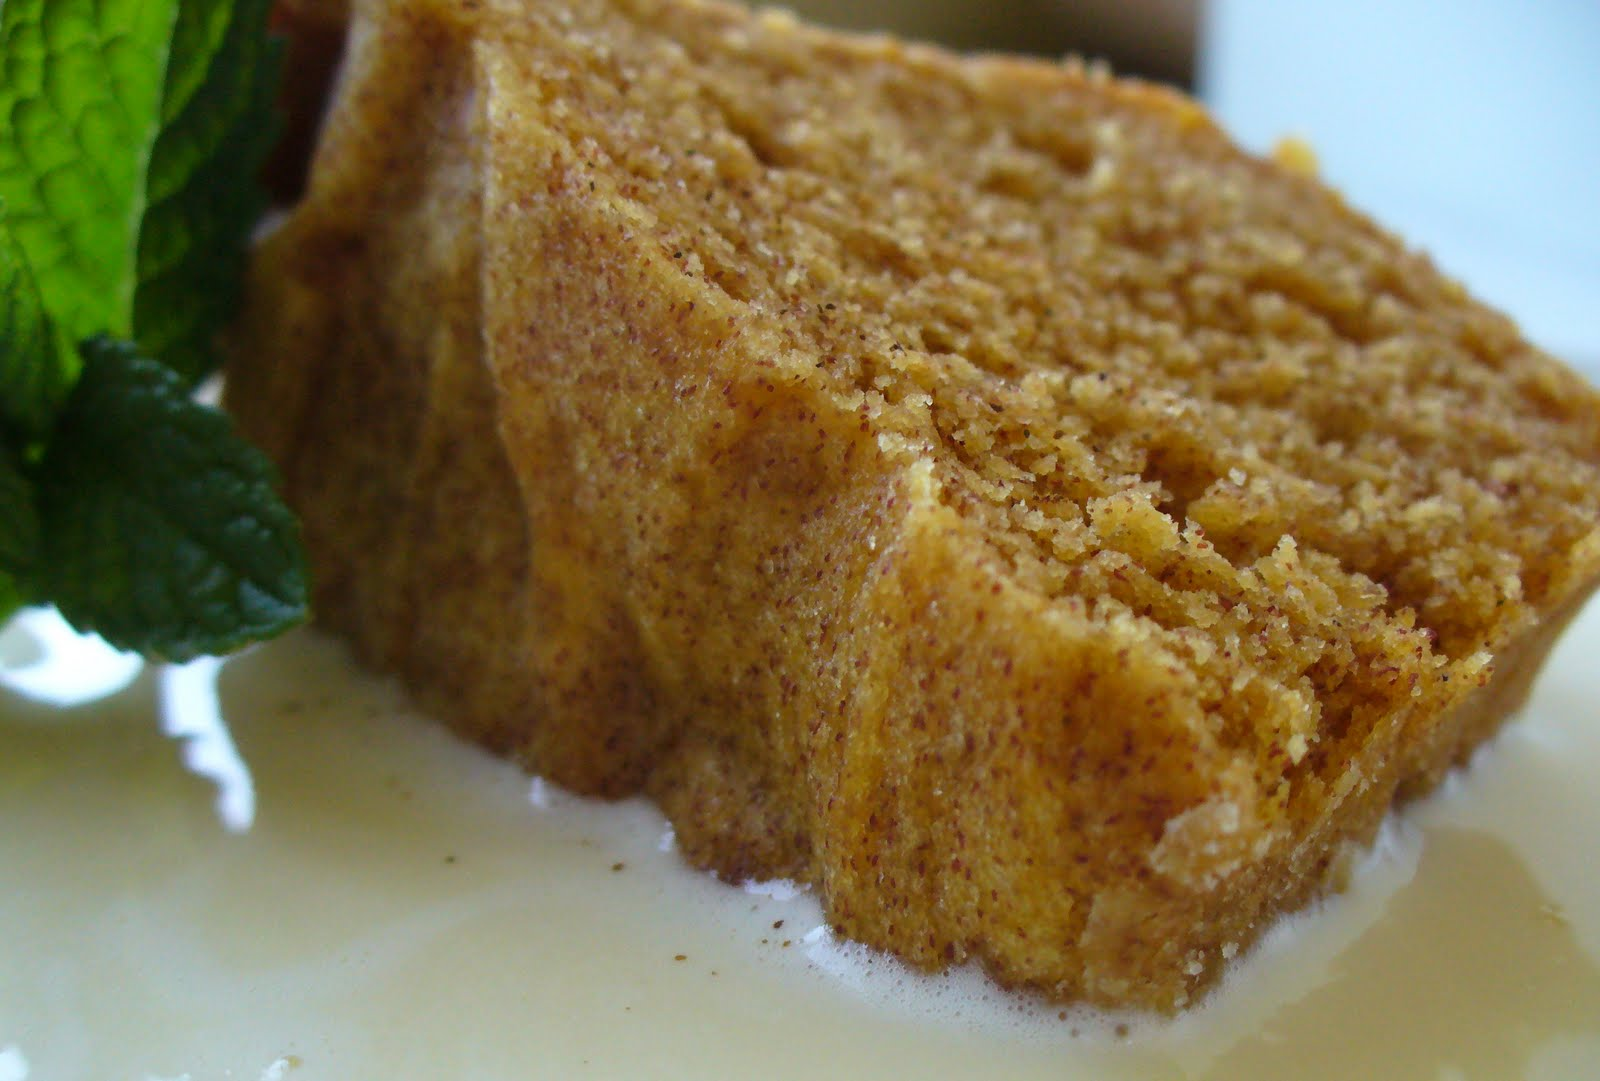 Mimi's Kitchen: Steamed Persimmon Pudding with Cinnamon ...